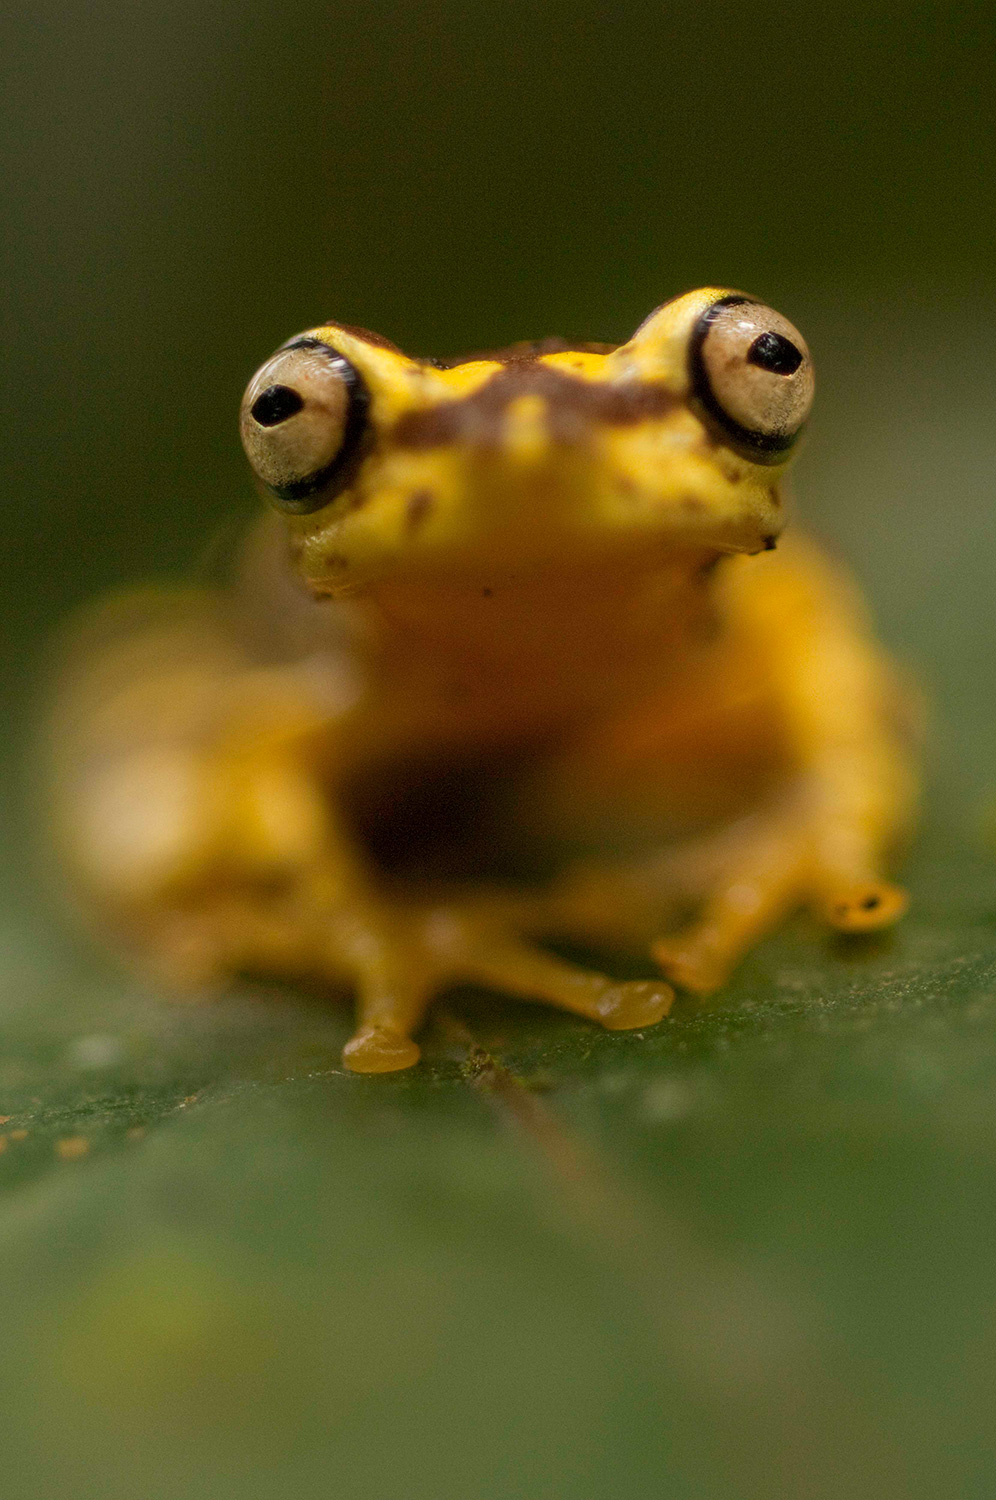 A yellow and black frog on a leaf